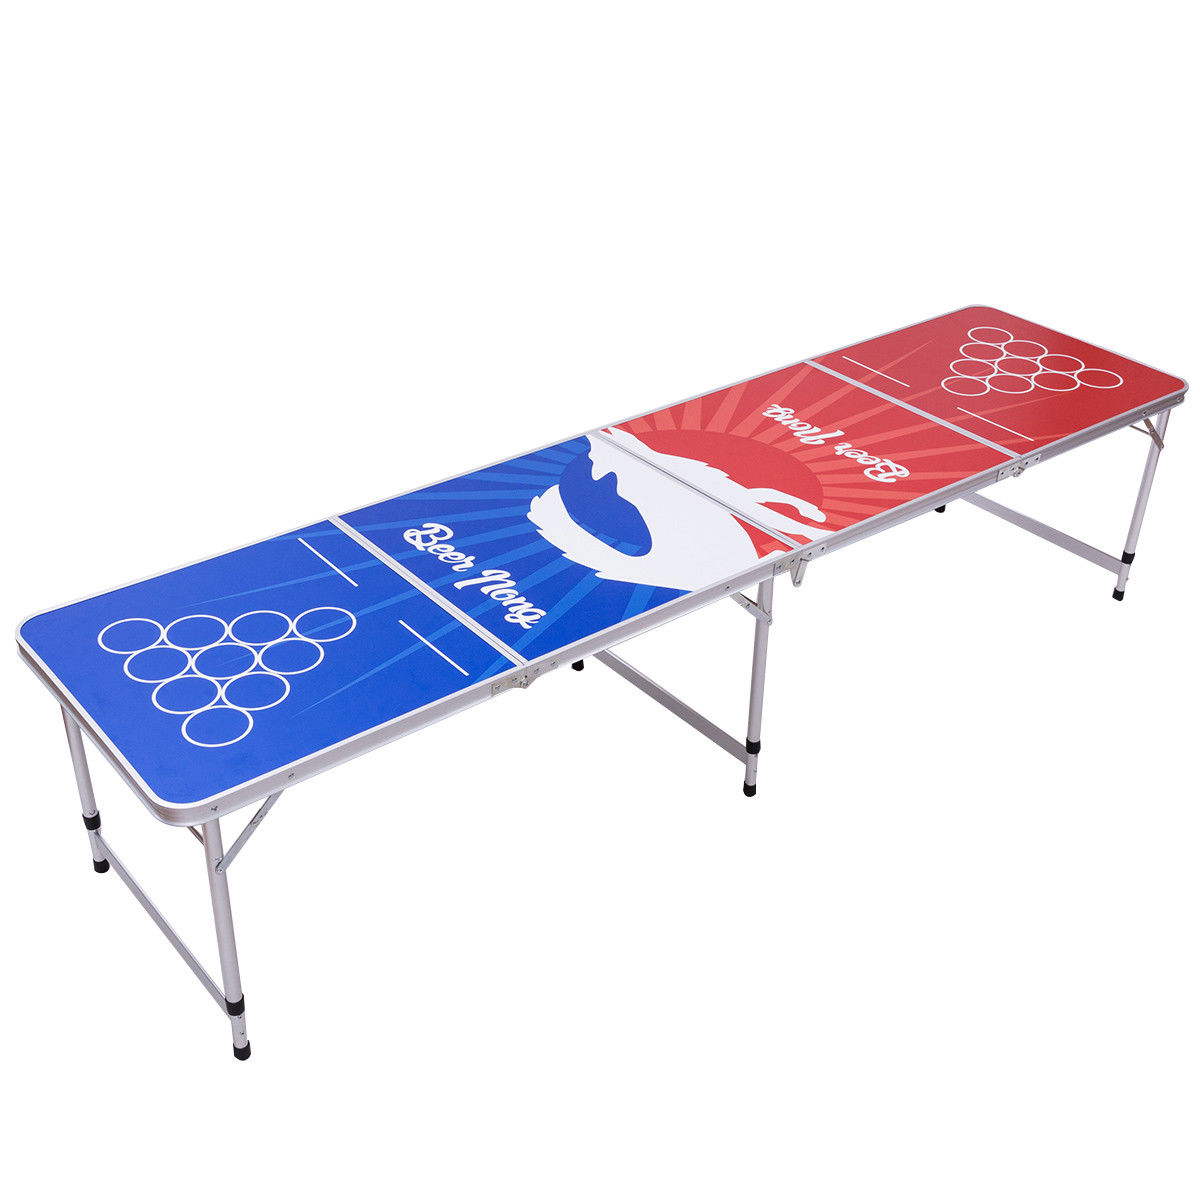 GHP Lightweight Aluminum Frame Waterproof 8' Foldable and Portable Beer Pong Table